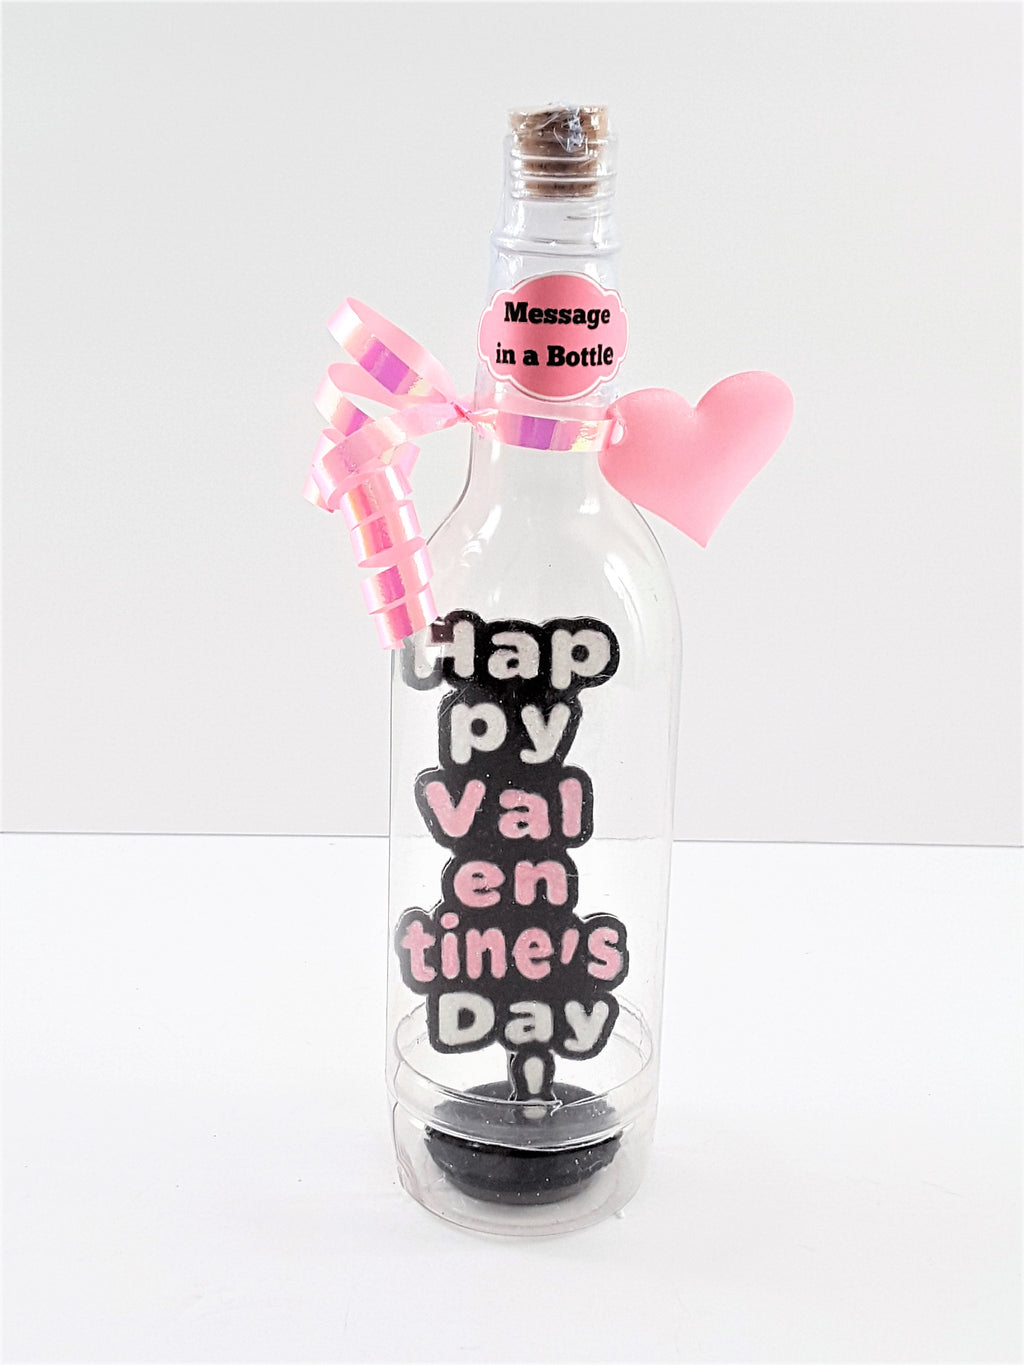 VALENTINE'S DAY 3D GREETING CARD  - MESSAGE IN A BOTTLE - HAPPY VALENTINE'S DAY